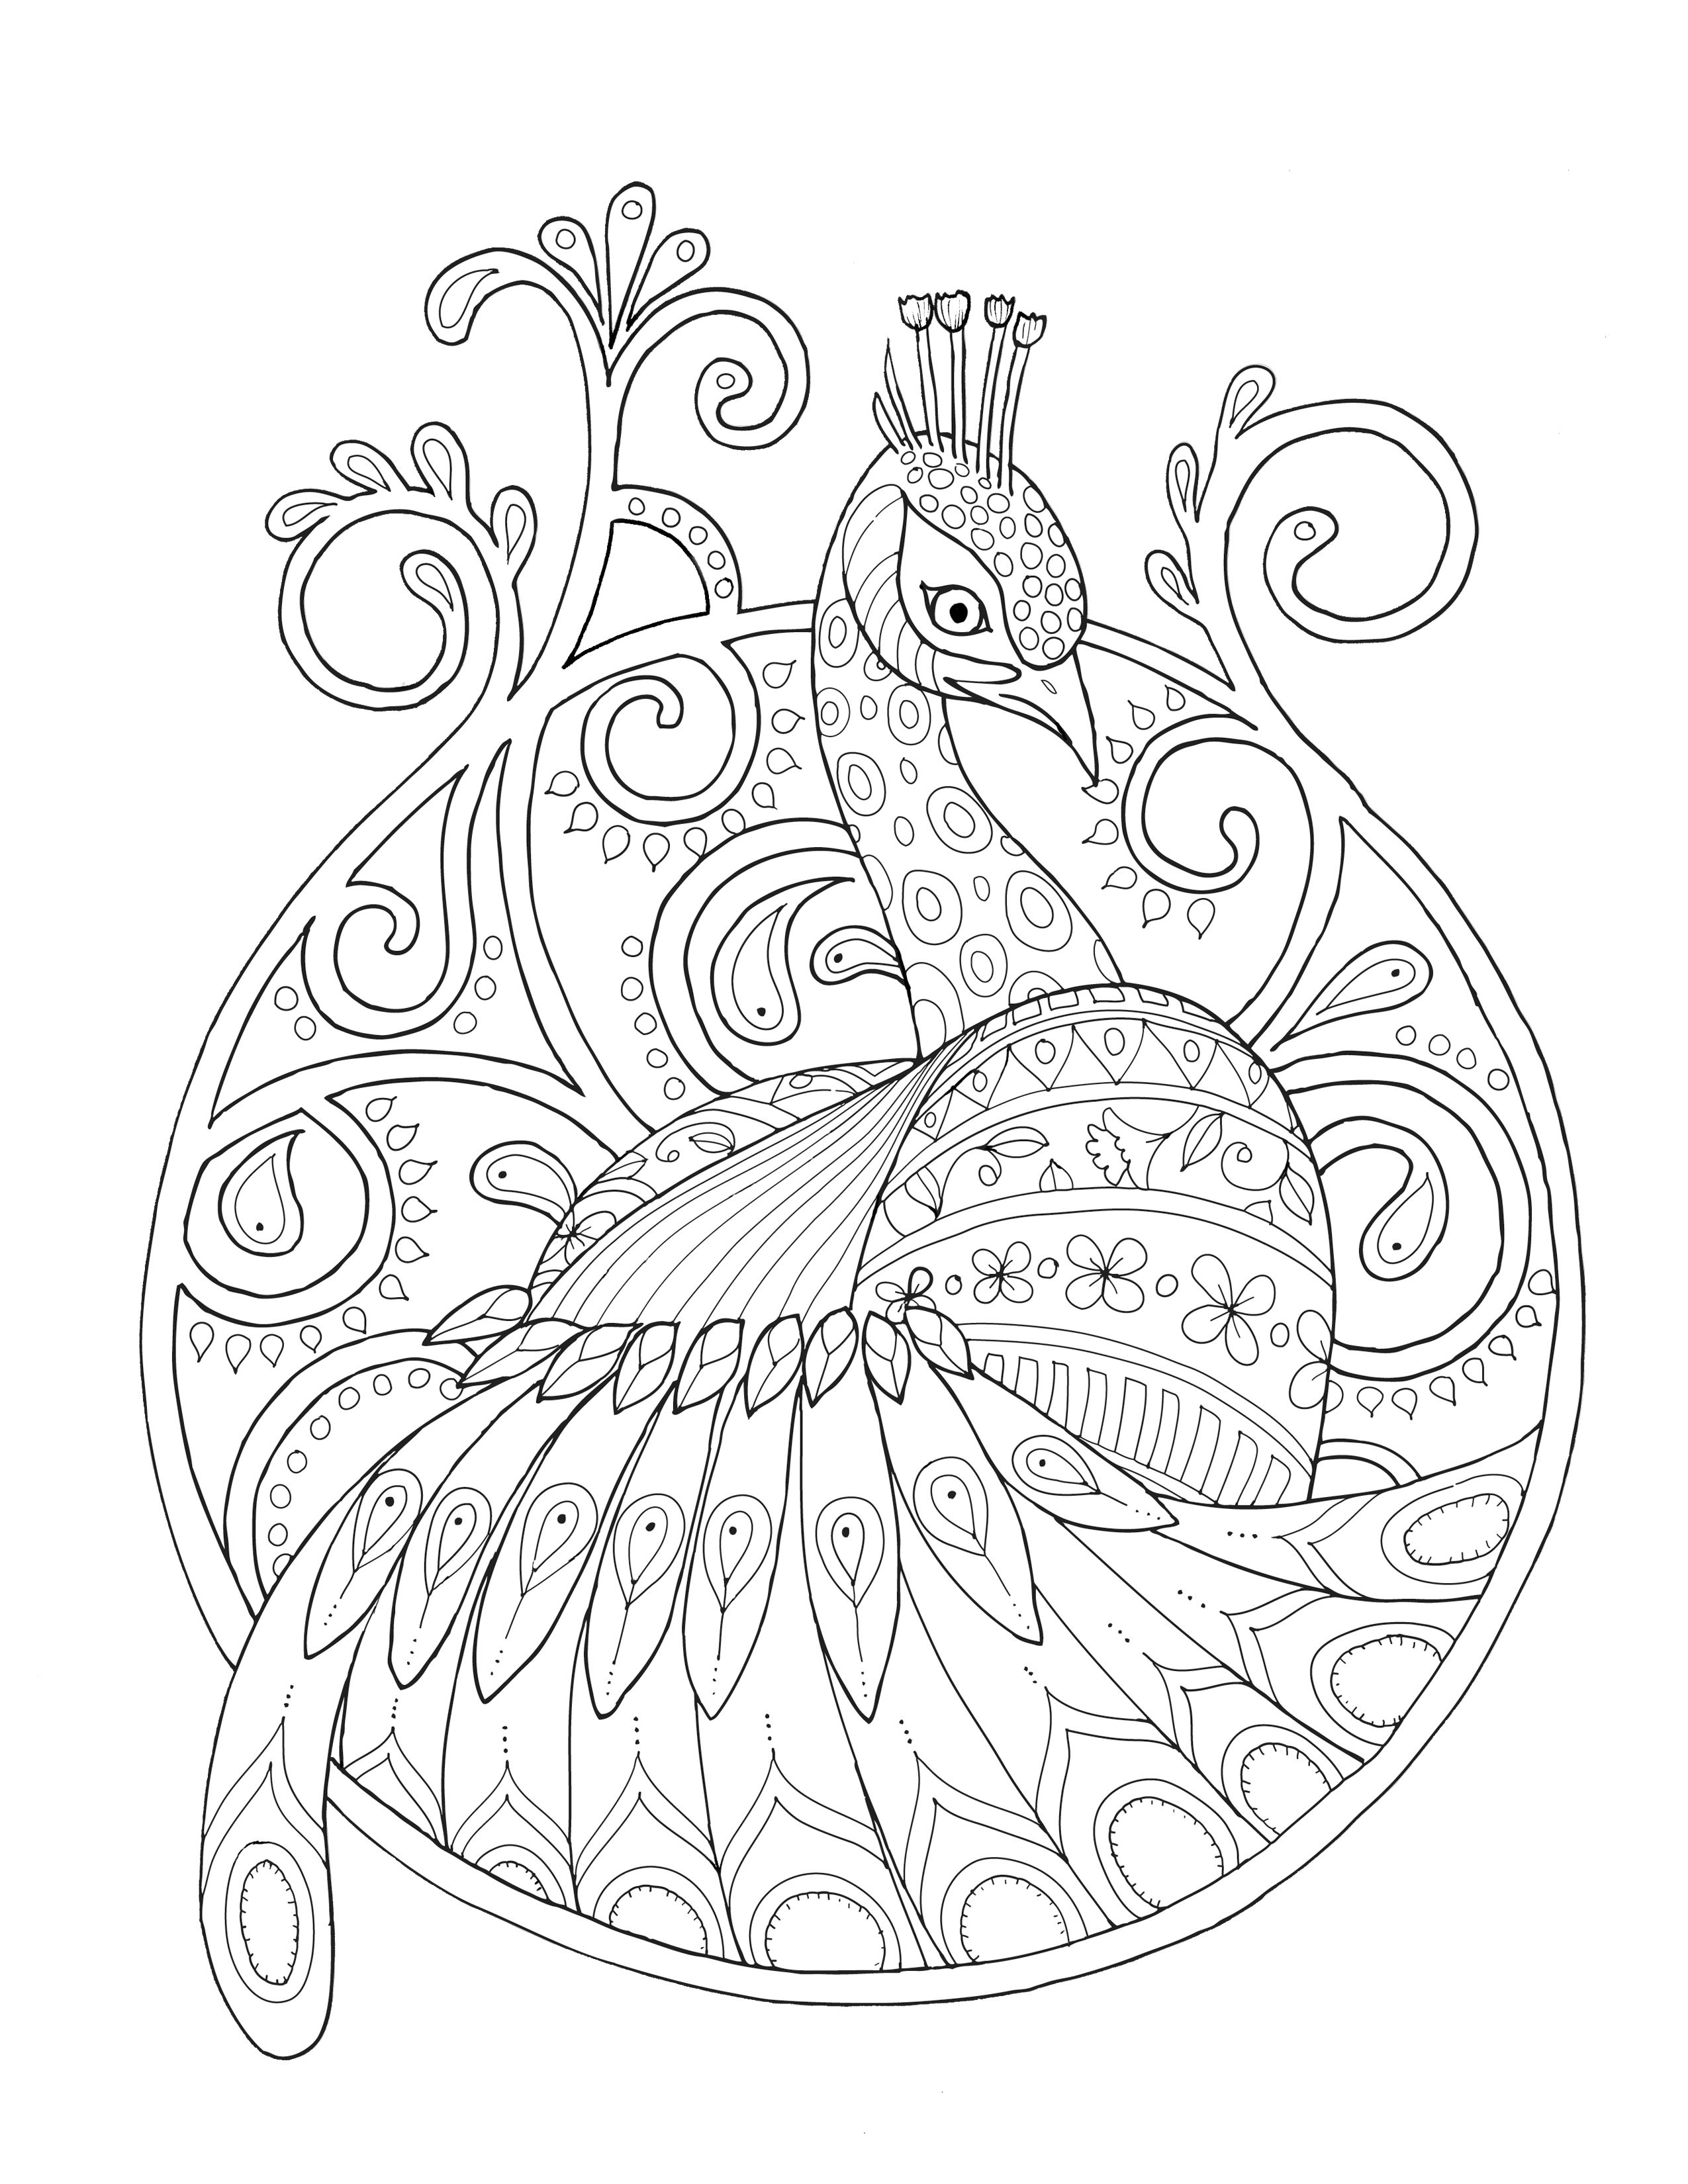 Escape To A World Of Flying Creatures Unicorns And Pegasuses Let Your Imagination Paint Them To Life A Fantasy Adult Coloring Book Full Of Gorgeous Re